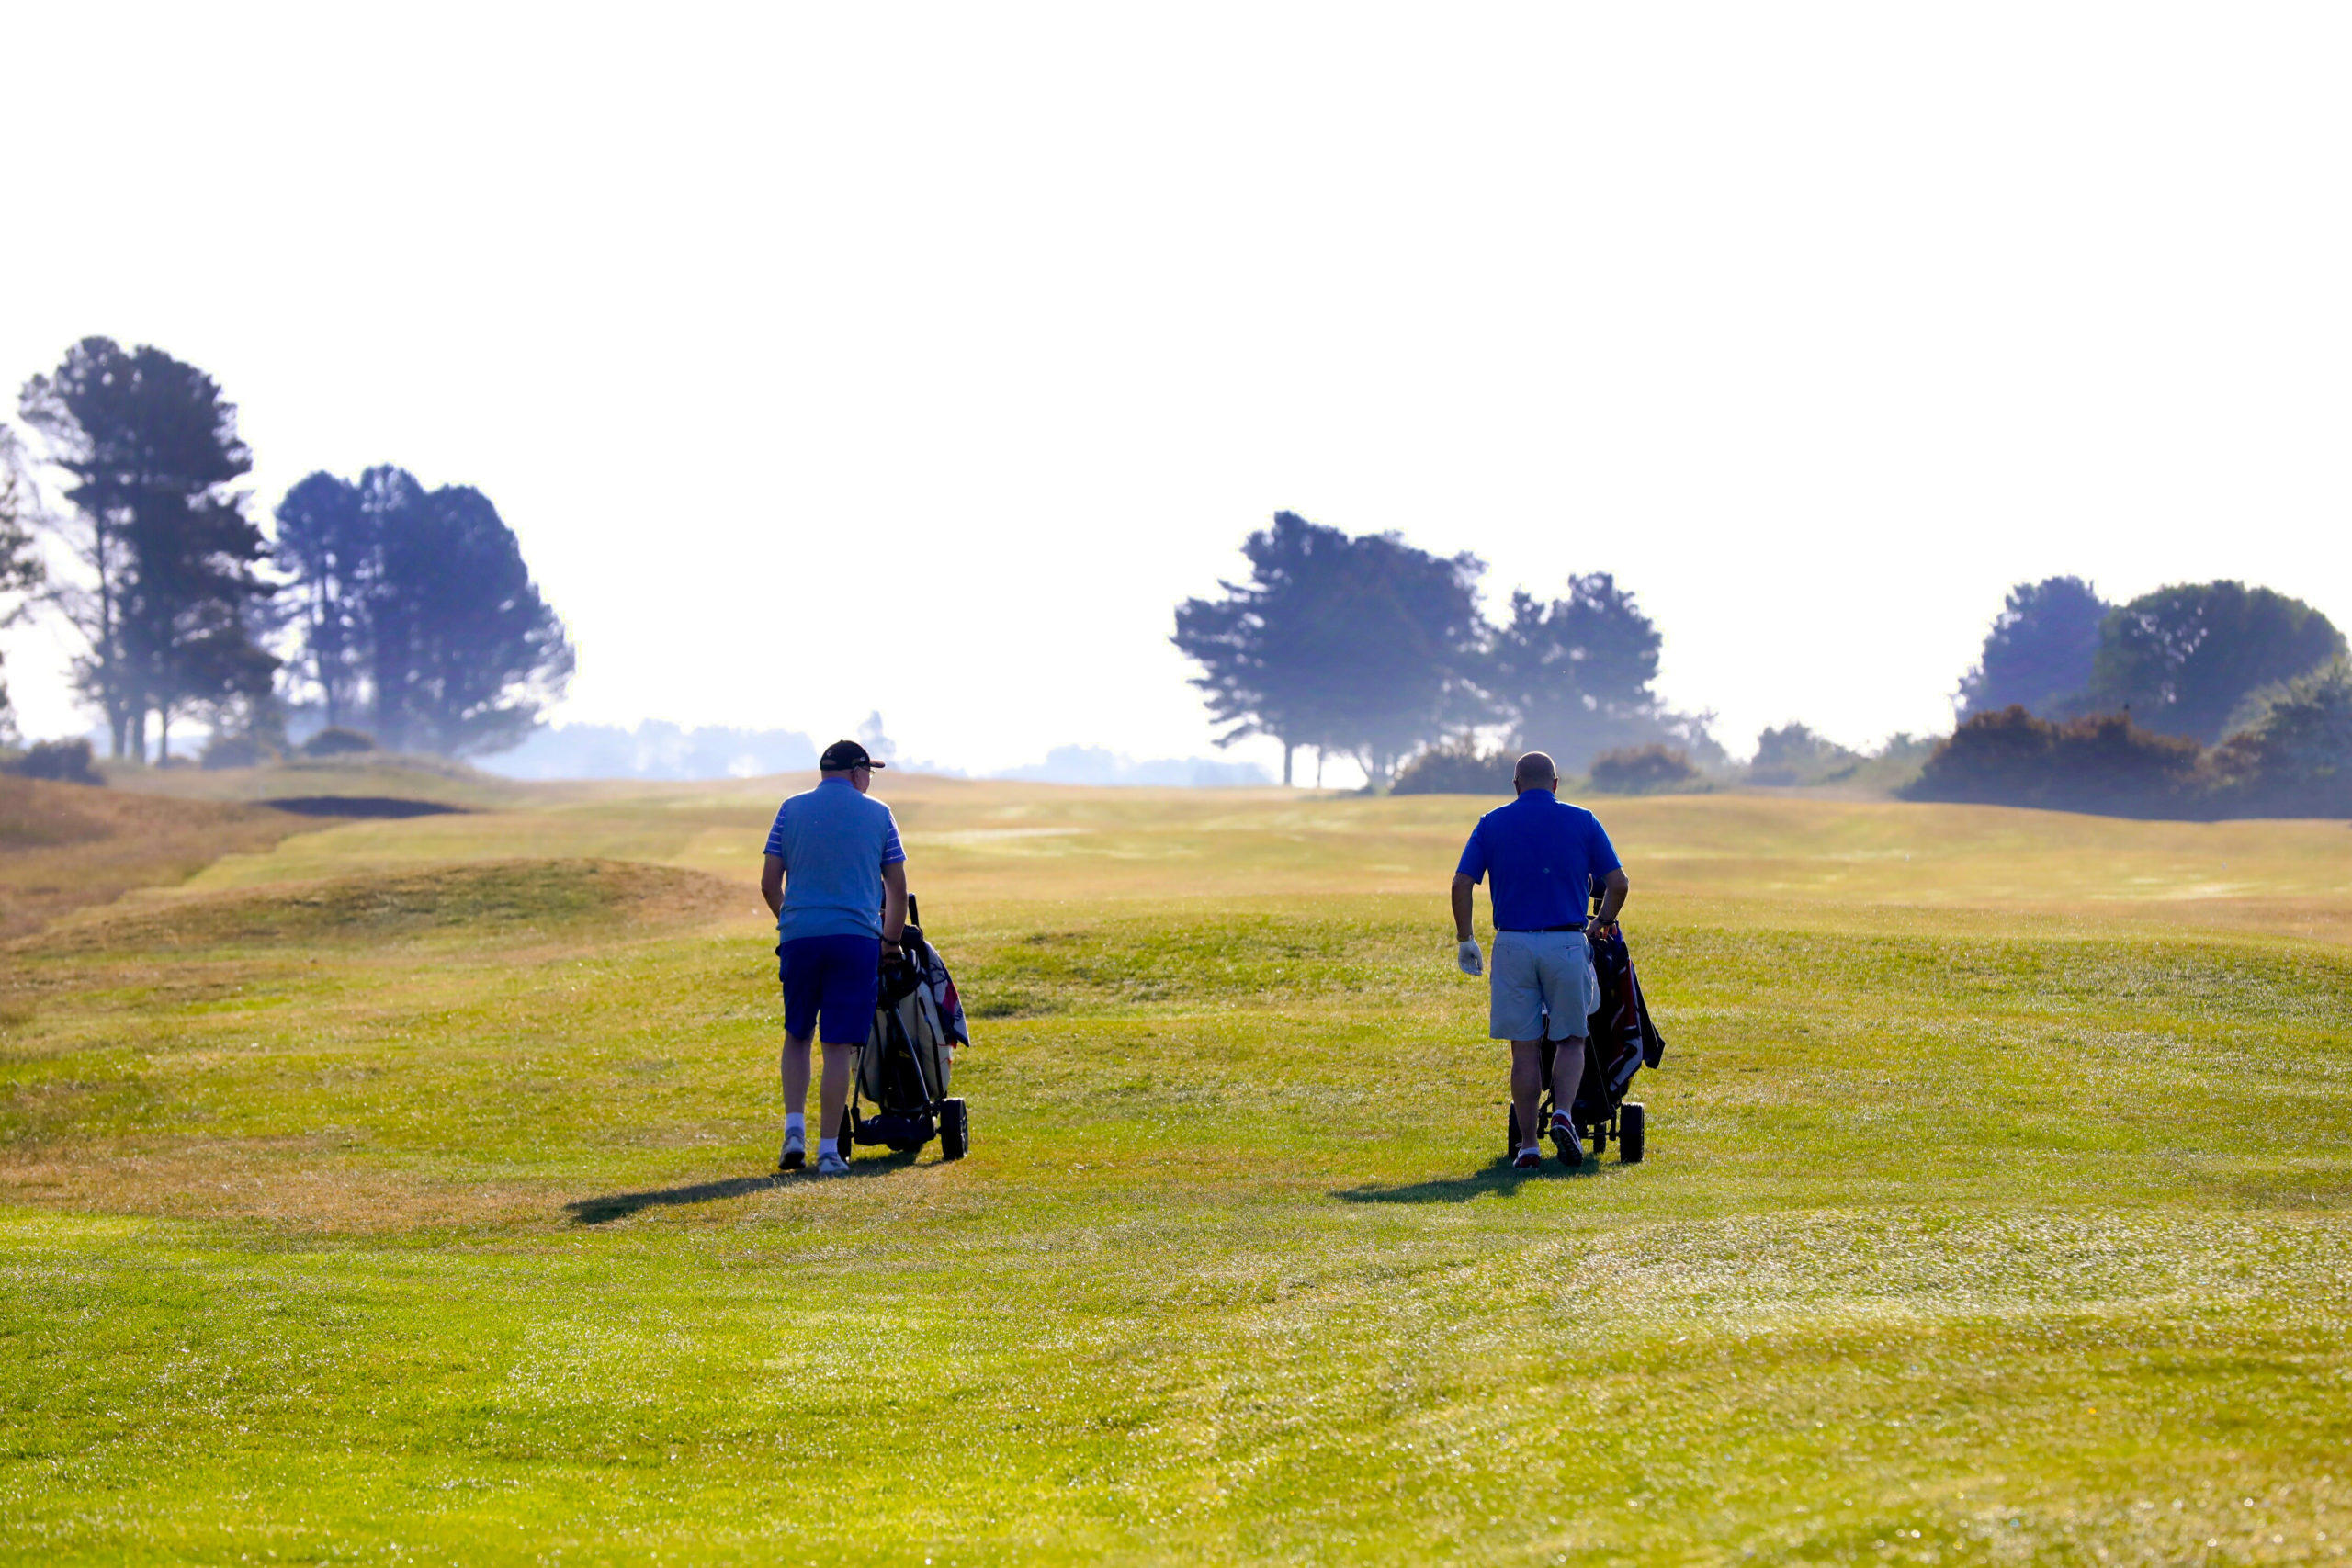 Golf was one of the first public activities to start after lockdown.